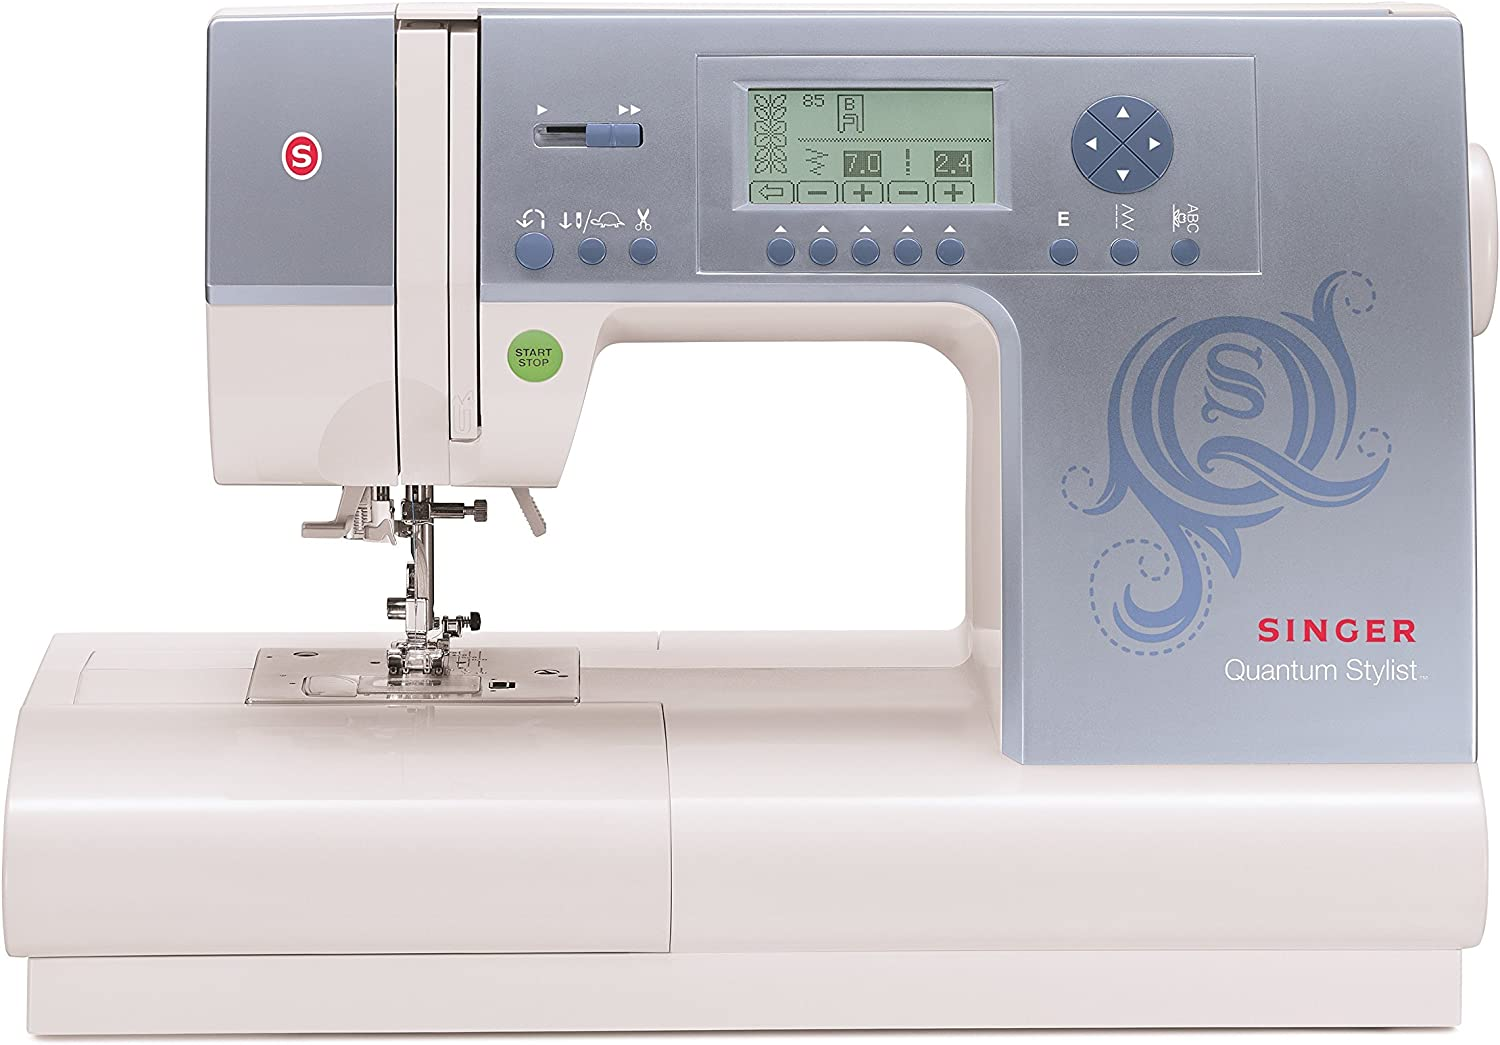 Top 8 Best Sewing Machine For Quilting Reviews in 2020 6